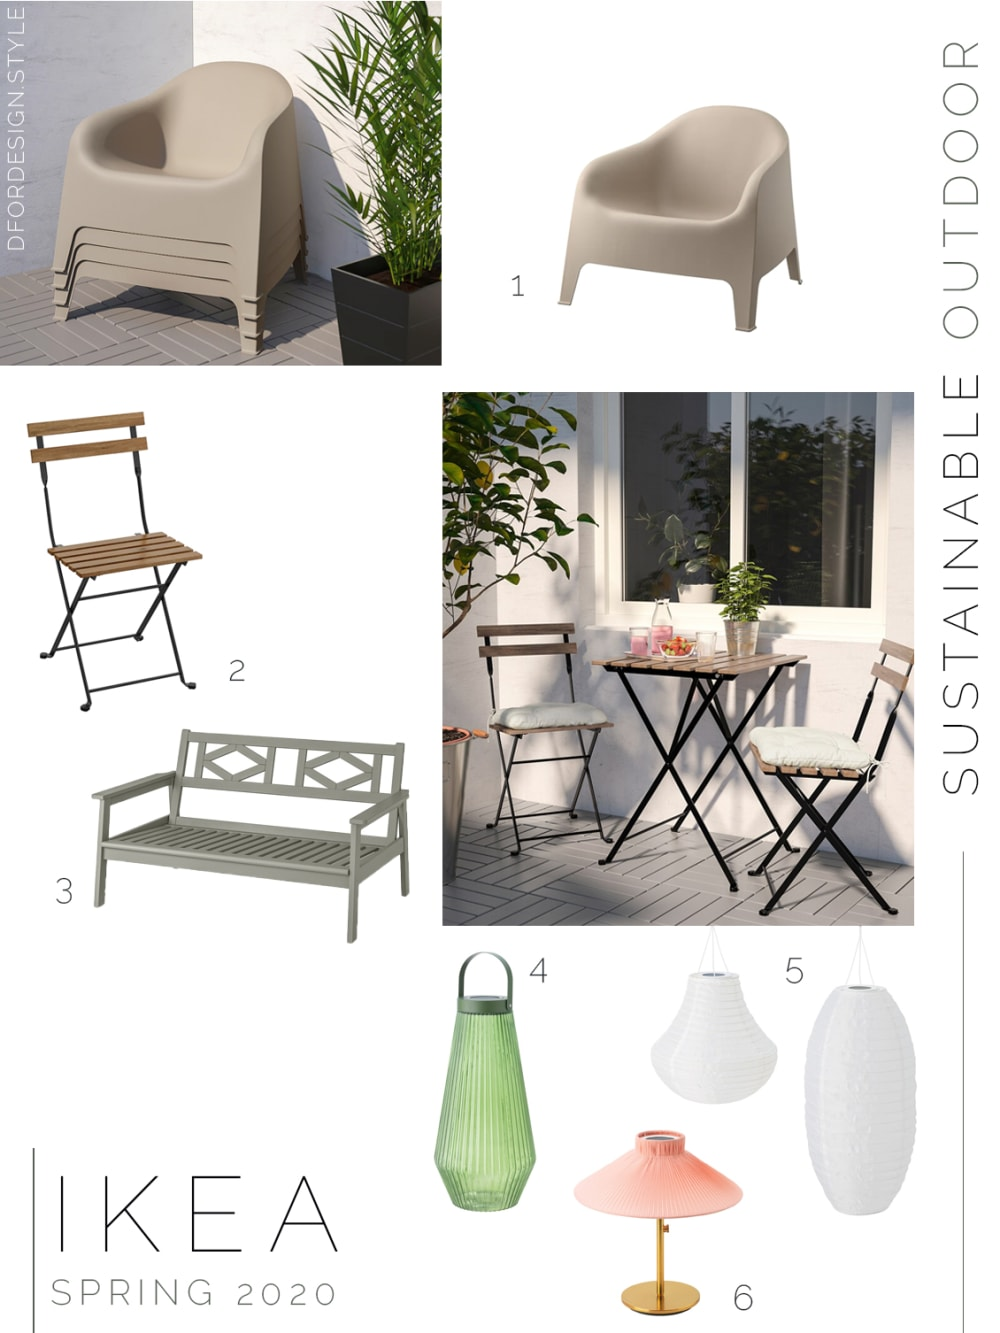 """Moodboard showing sustainable outdoor furnishings launched in IKEA spring catalogue 2020.<span class=""""sr-only""""> (opened in a new window/tab)</span>"""